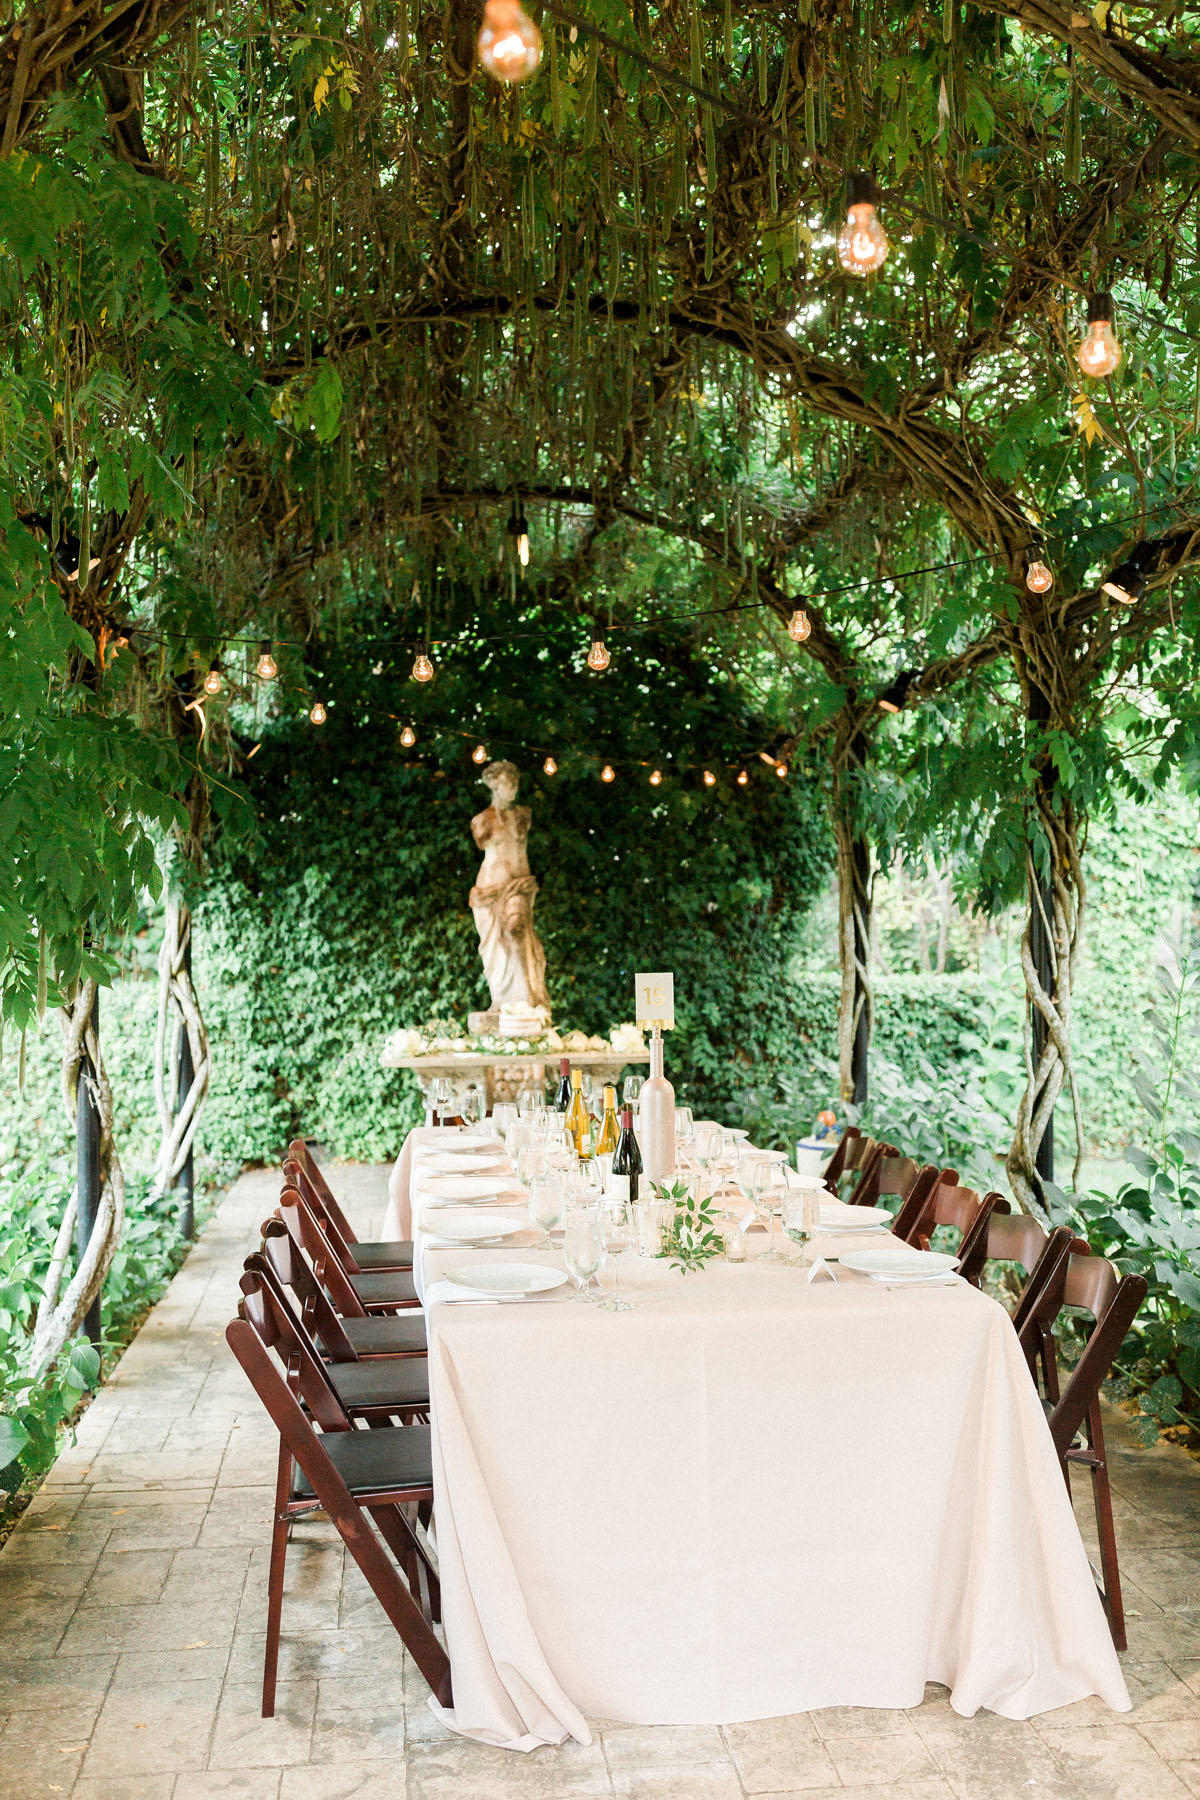 Private Estate Wedding with Tuscan Garden Vibes